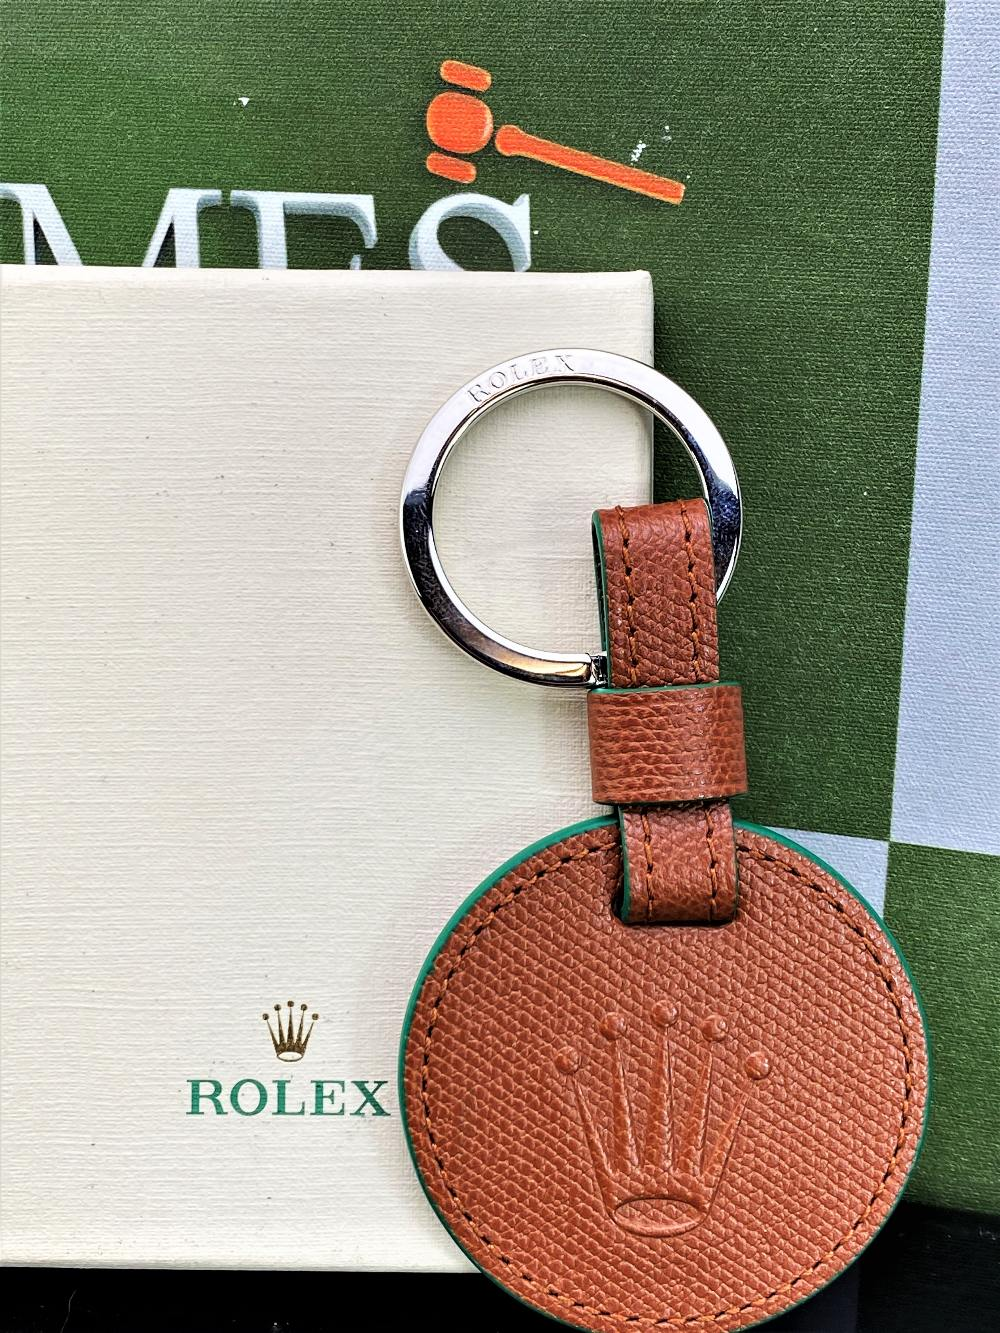 Lot 16 - Rolex Official Merchandise Crown Brown Leather Key Ring